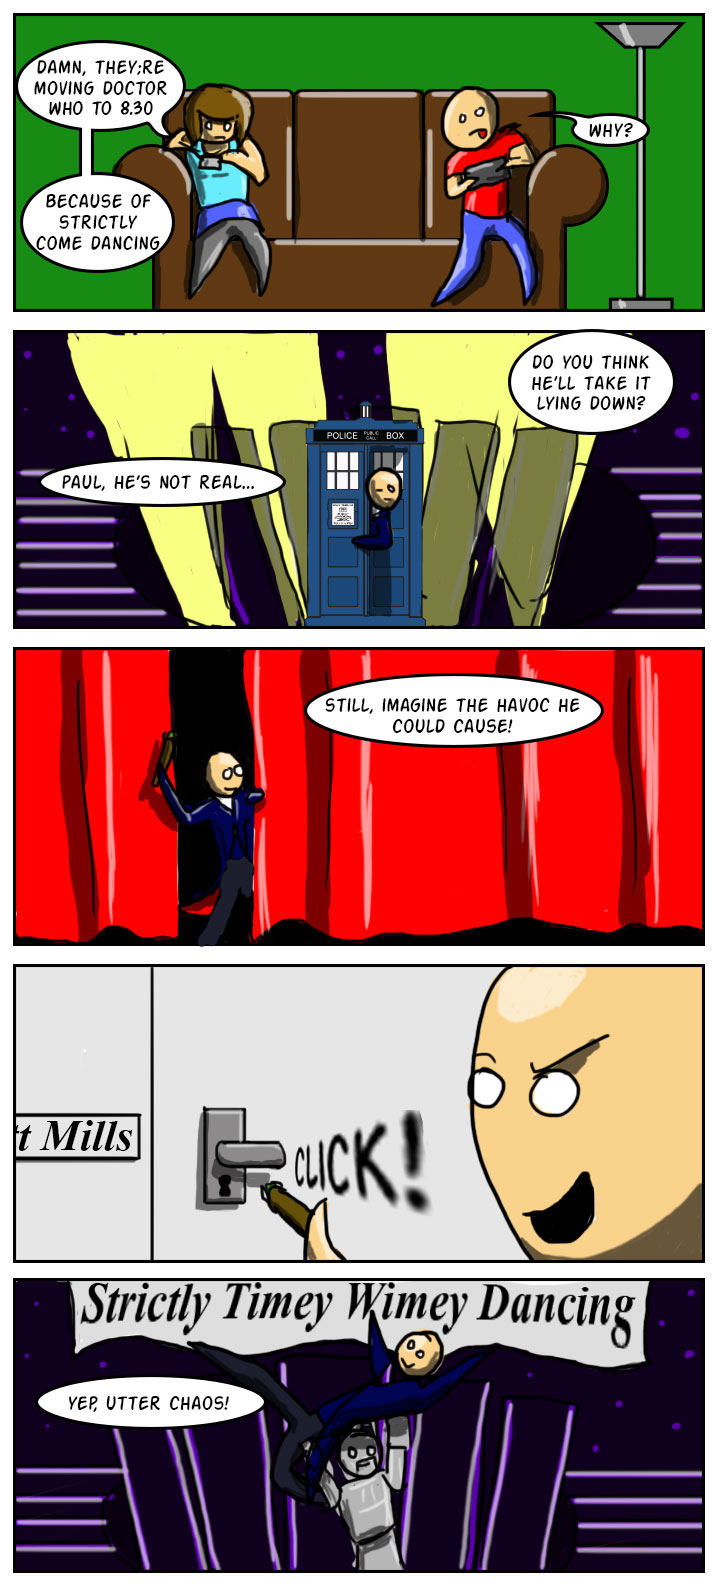 Strictly-timey-wimey-dancing